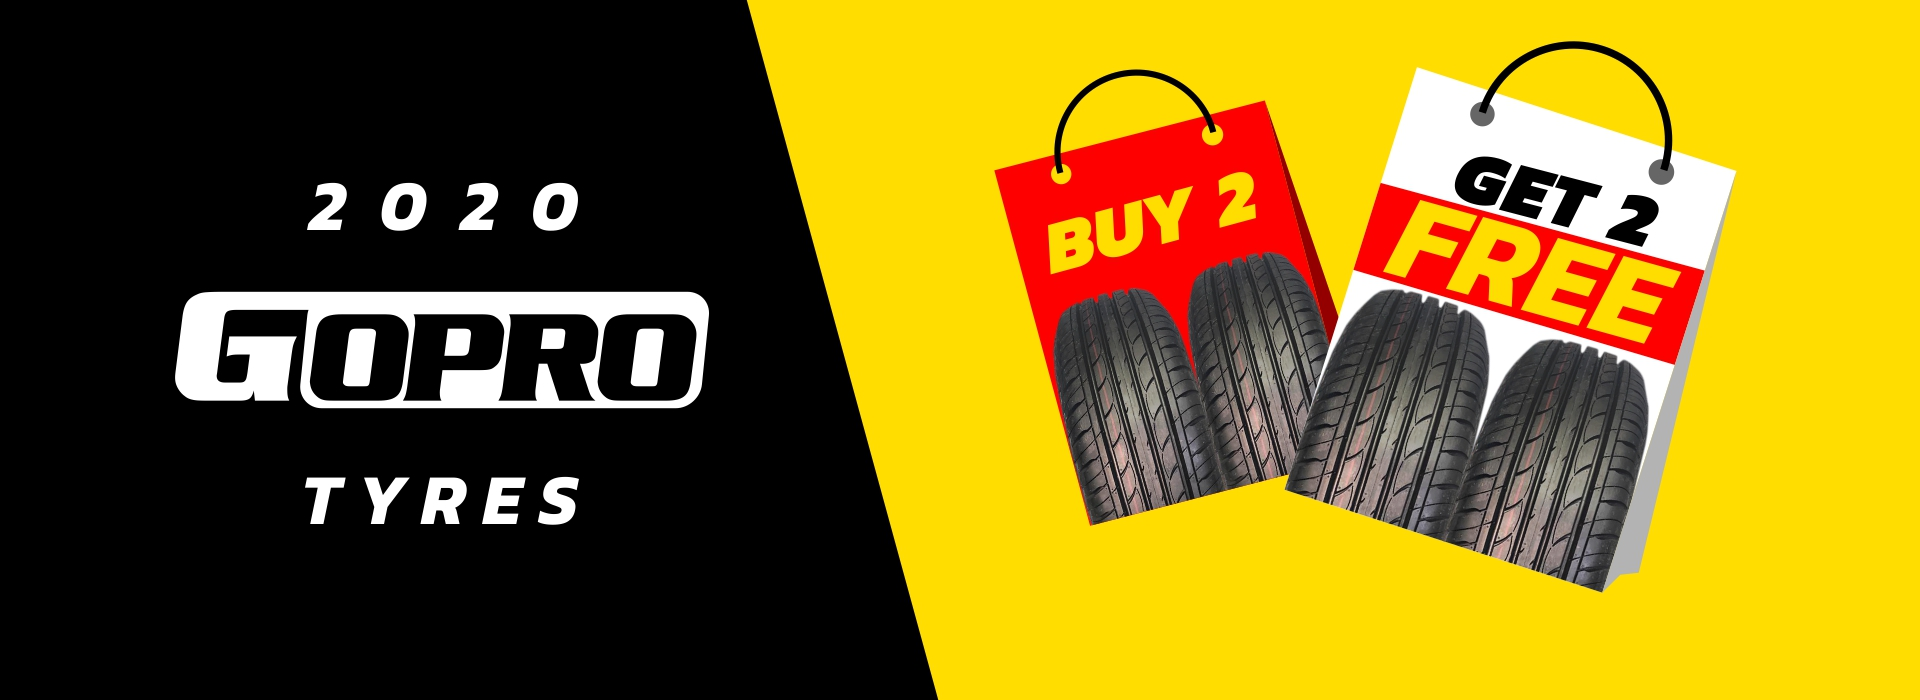 Buy 2 Get 2 Free on 2020 GO Pro Tyres at Stop&Go